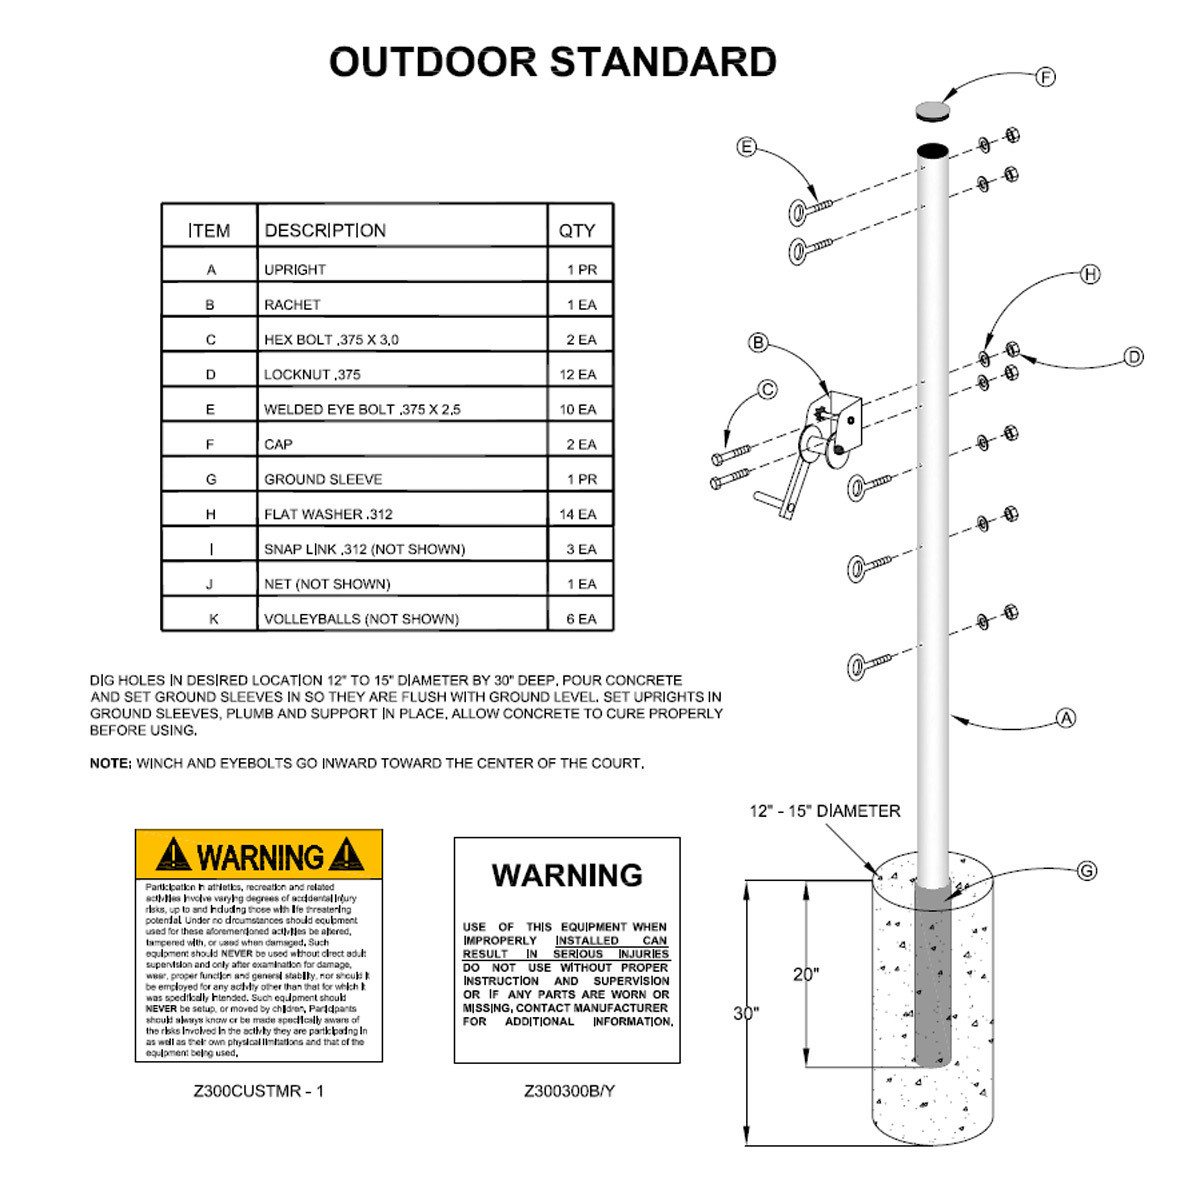 Semi Permanent Outdoor Game Standards